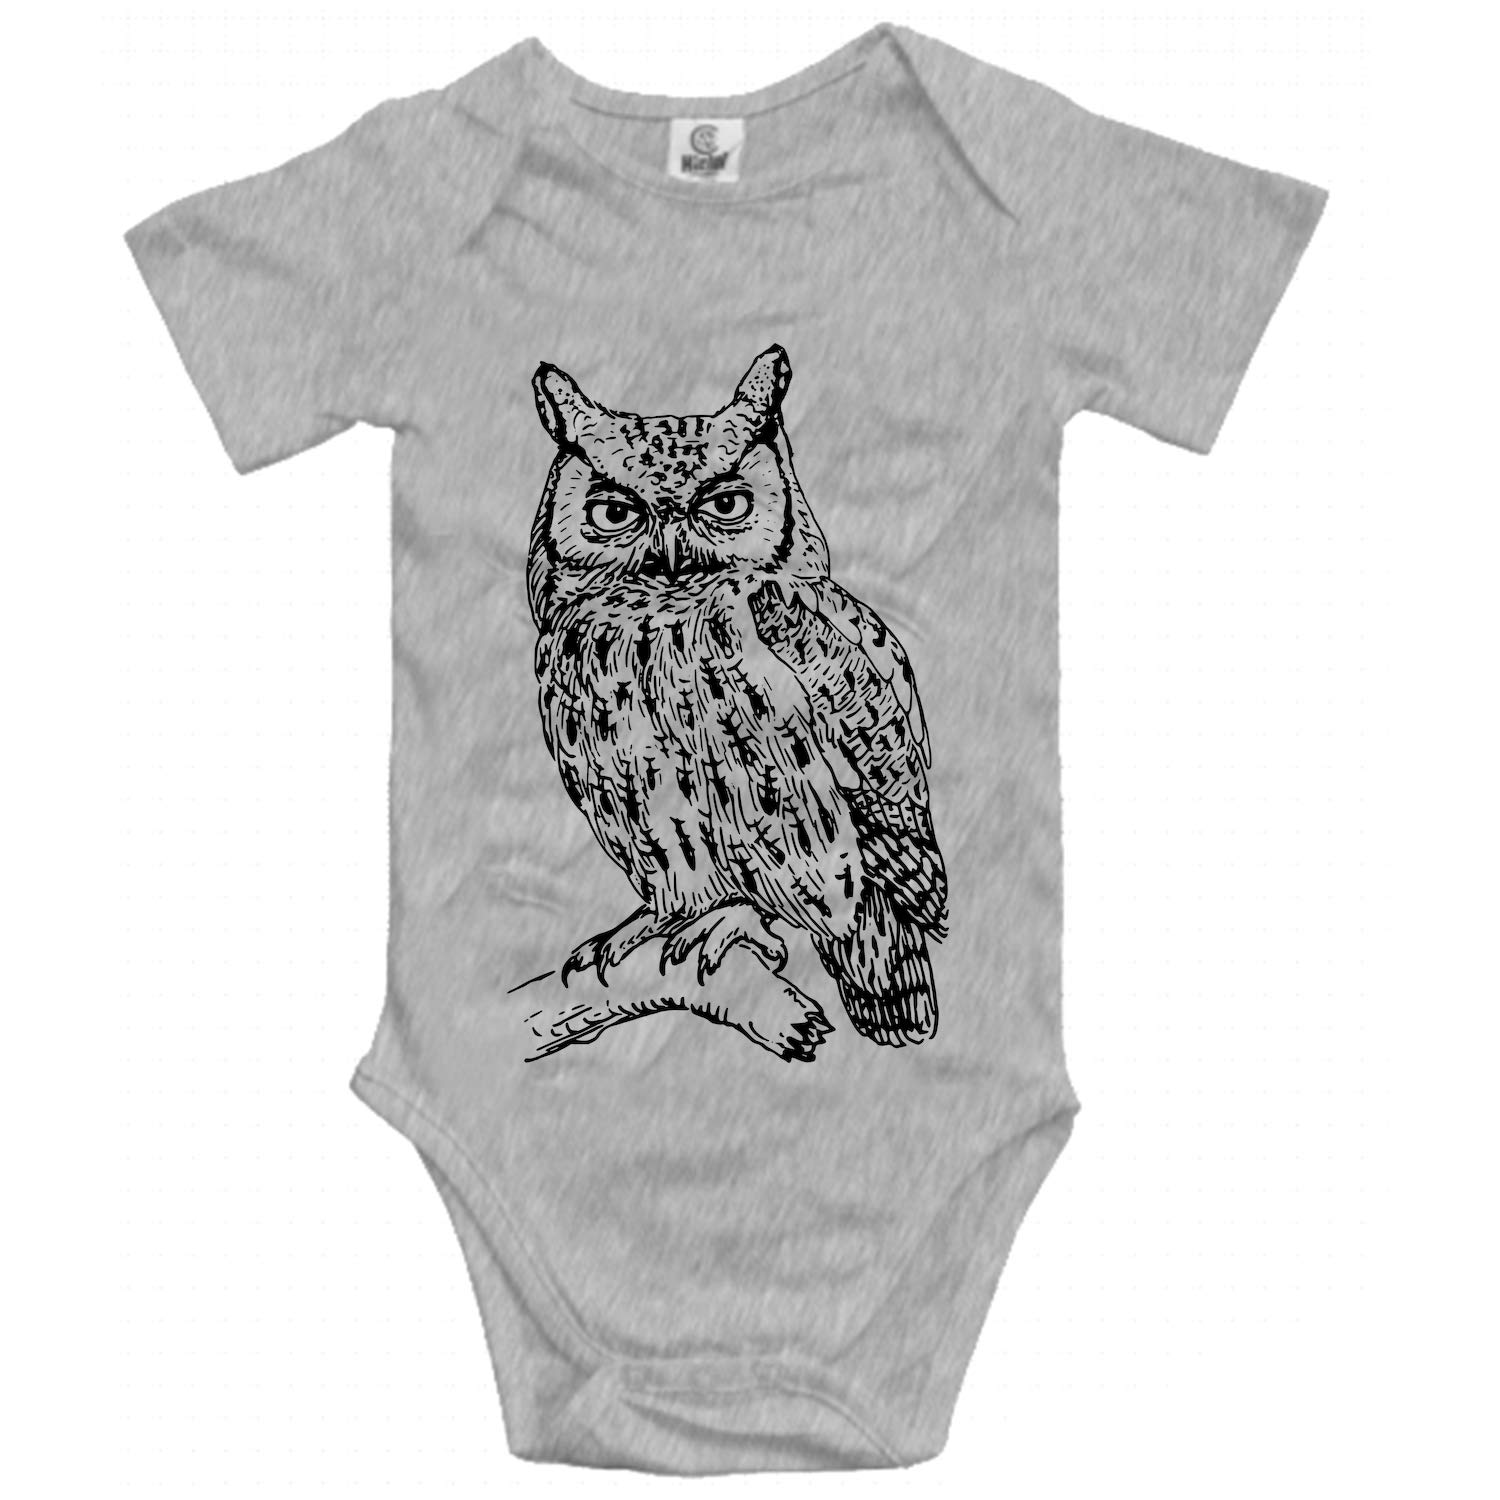 Turtle Tortoise Reptile Shell Custom Baby Cotton Bodysuits One-Piece